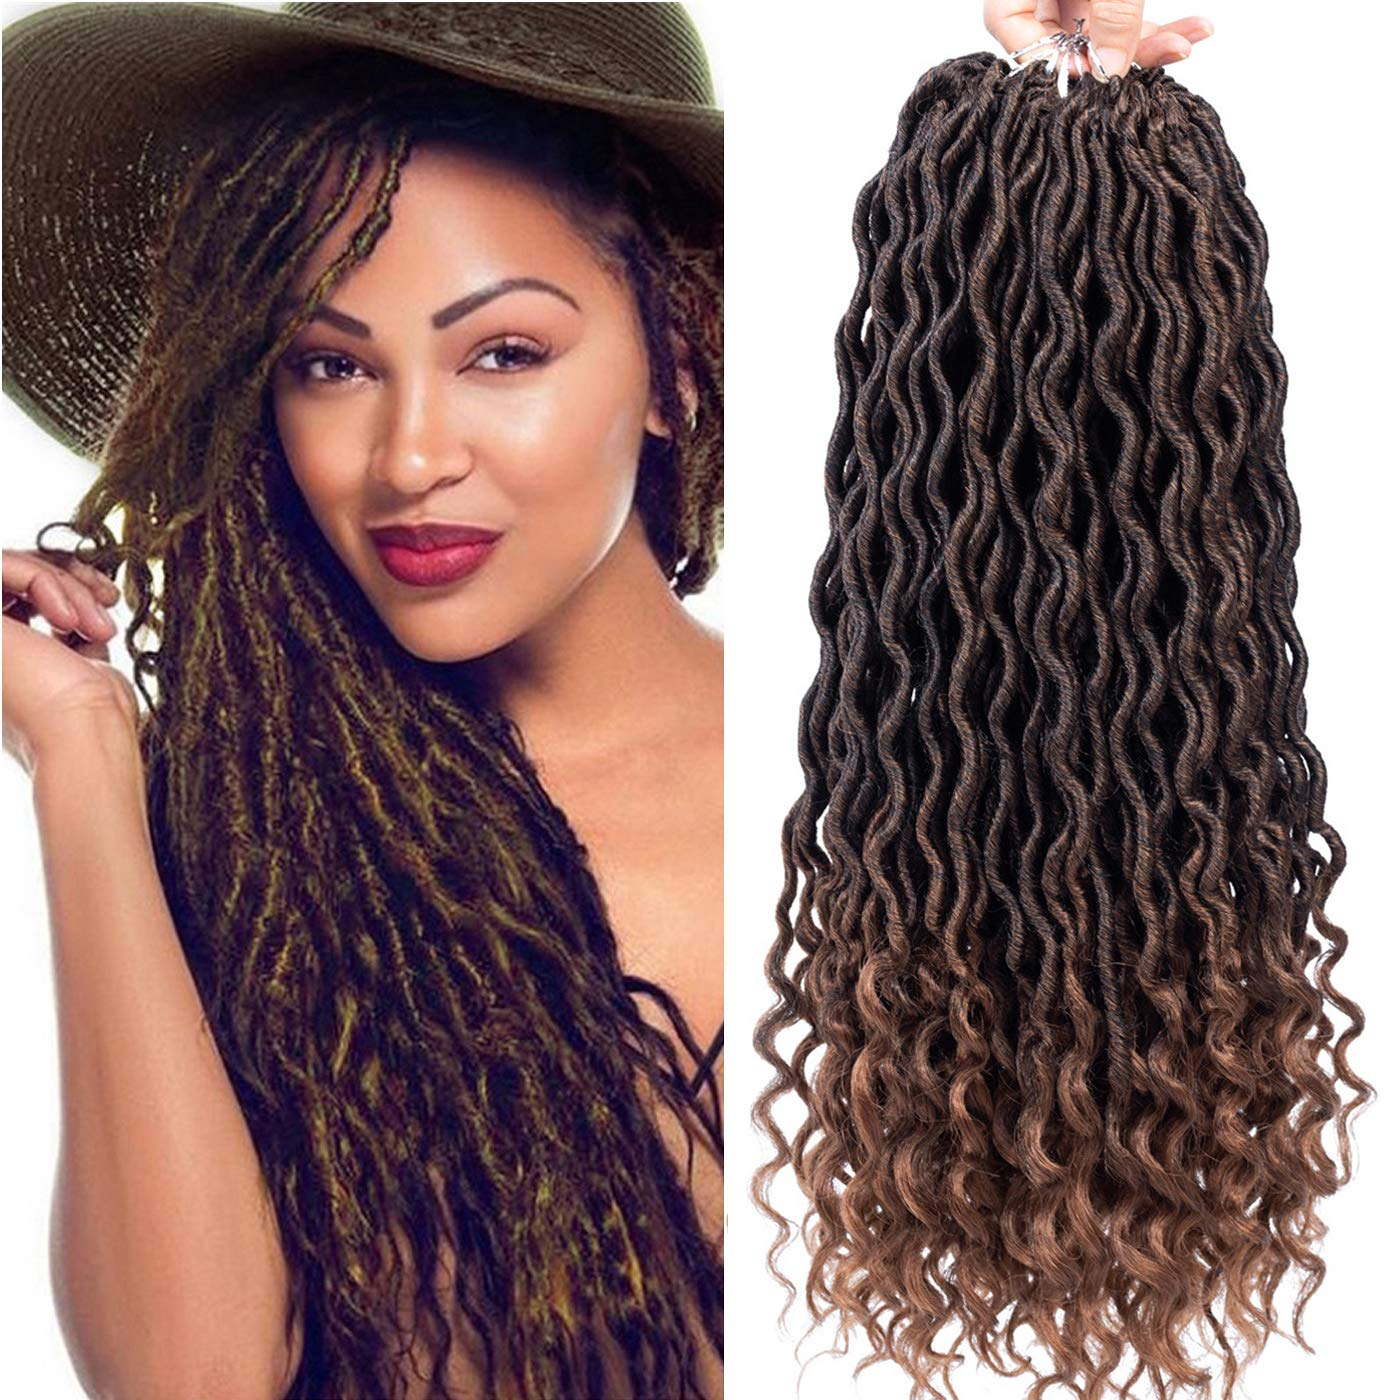 Karida Faux Locs Crochet Hair Deep Wave Braiding Hair With Curly Ends Crochet Goddess Locs Synthetic Braids Hair Extensions (18''-3bundles, T1B-30)